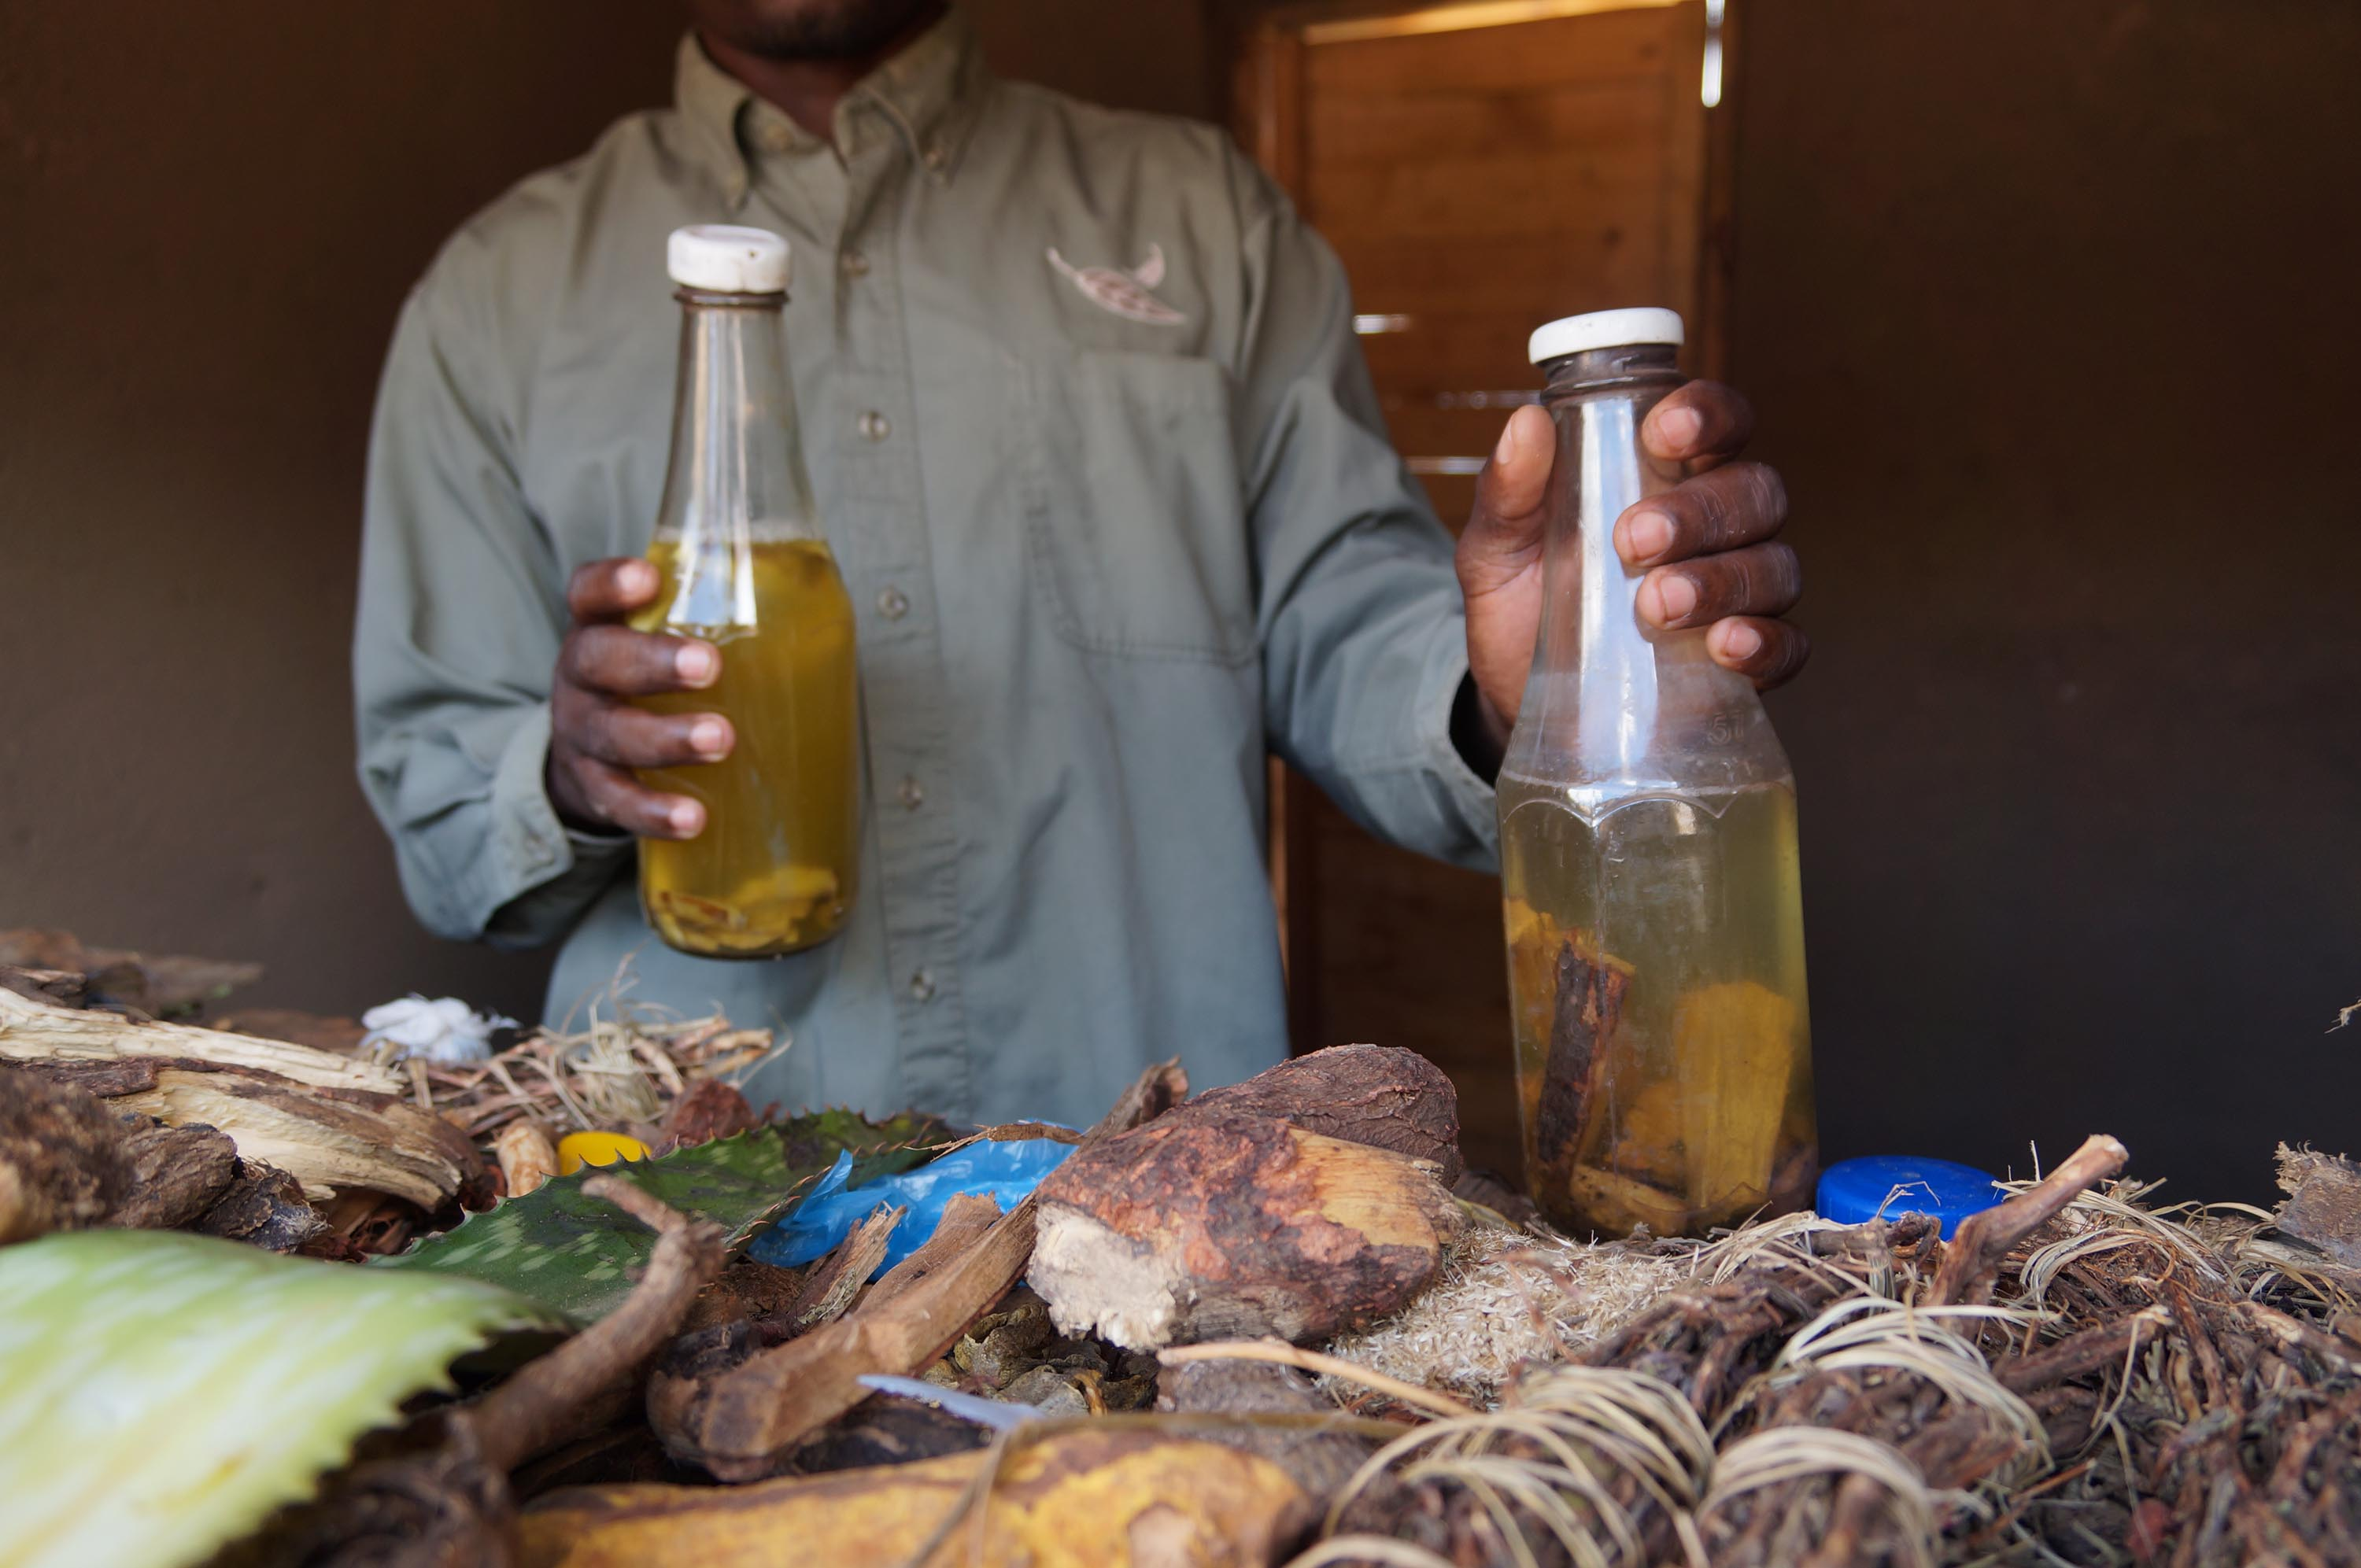 A traditional healer shows some of the abortion-inducing concoctions.